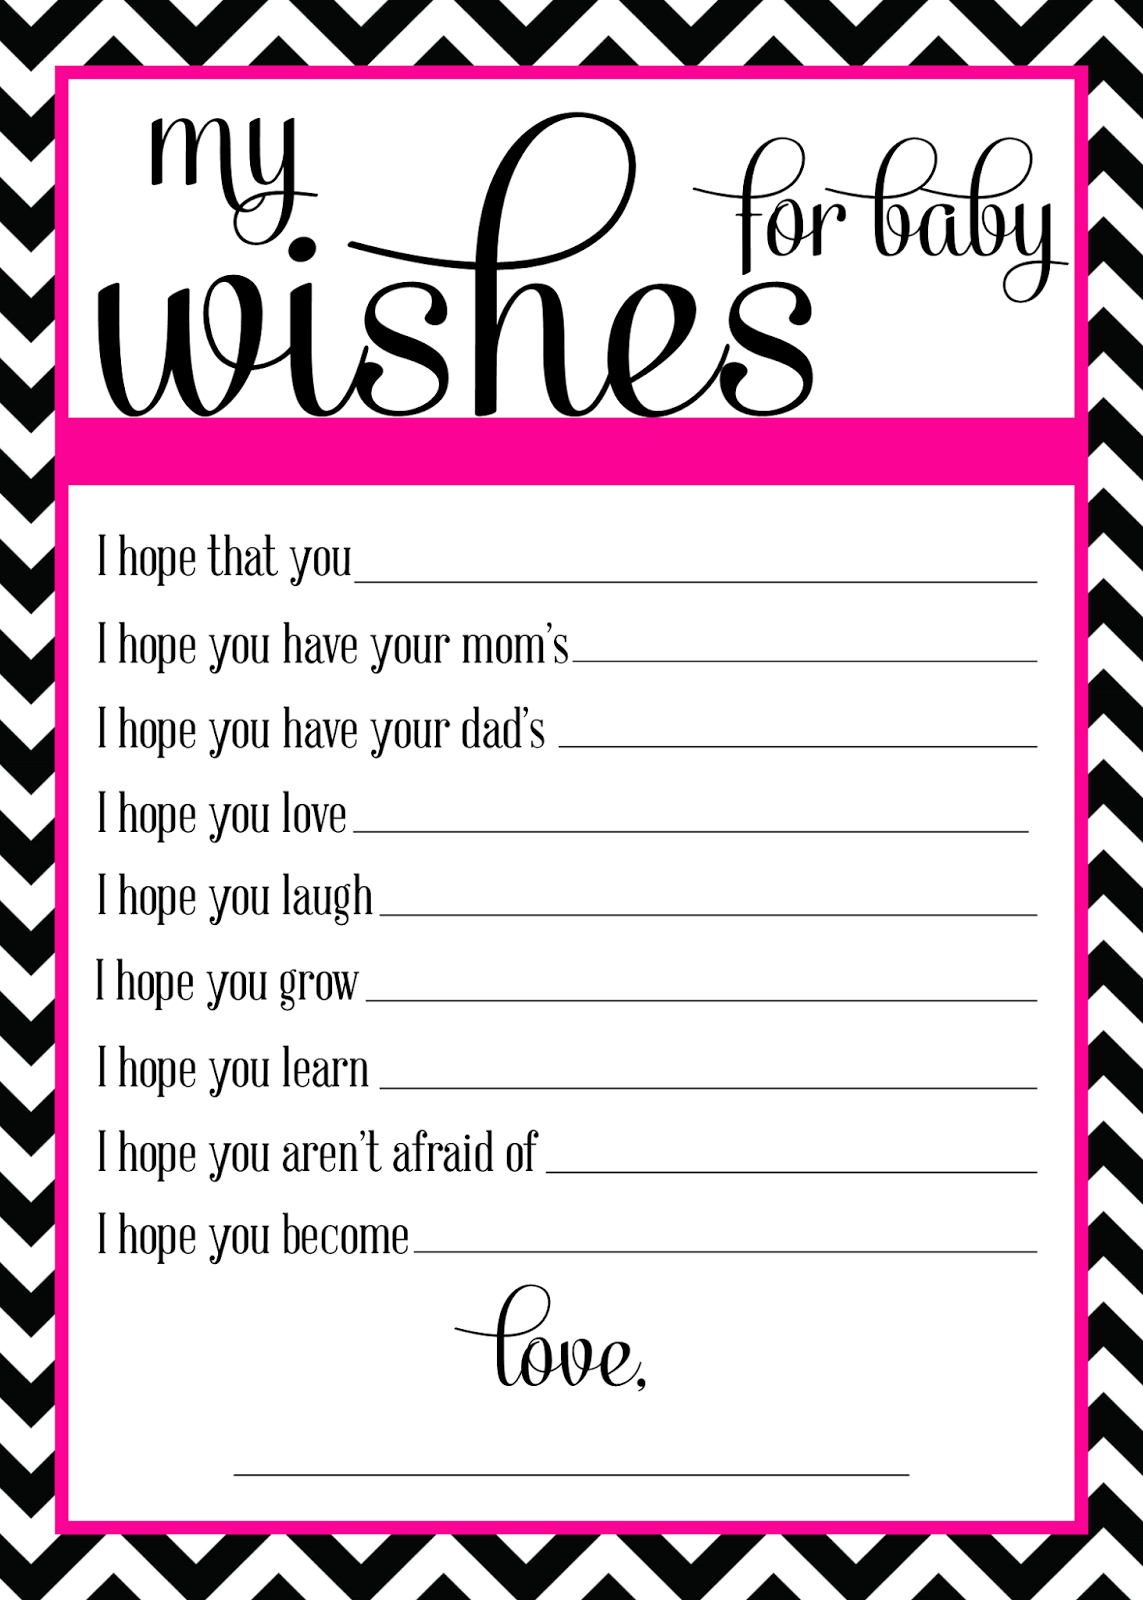 Sugar Queens Wishes For Baby